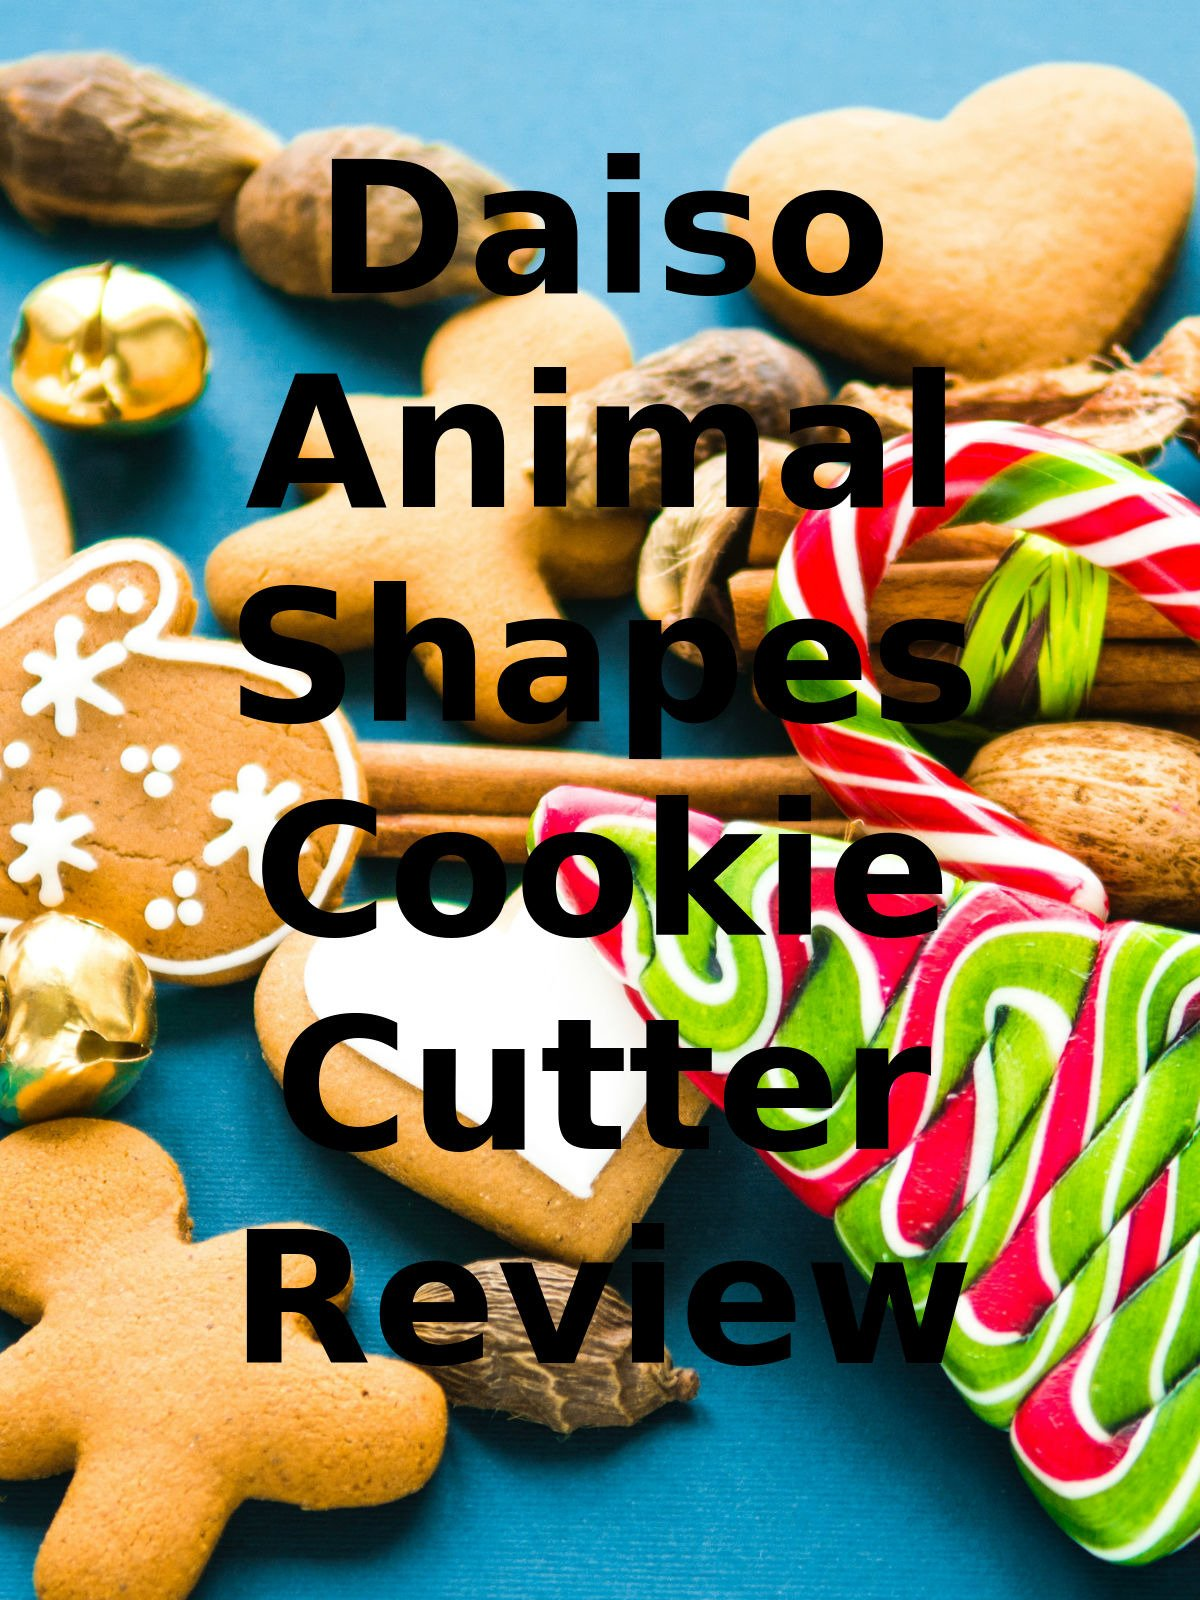 Review: Daiso Animal Shapes Cookie Cutter Review